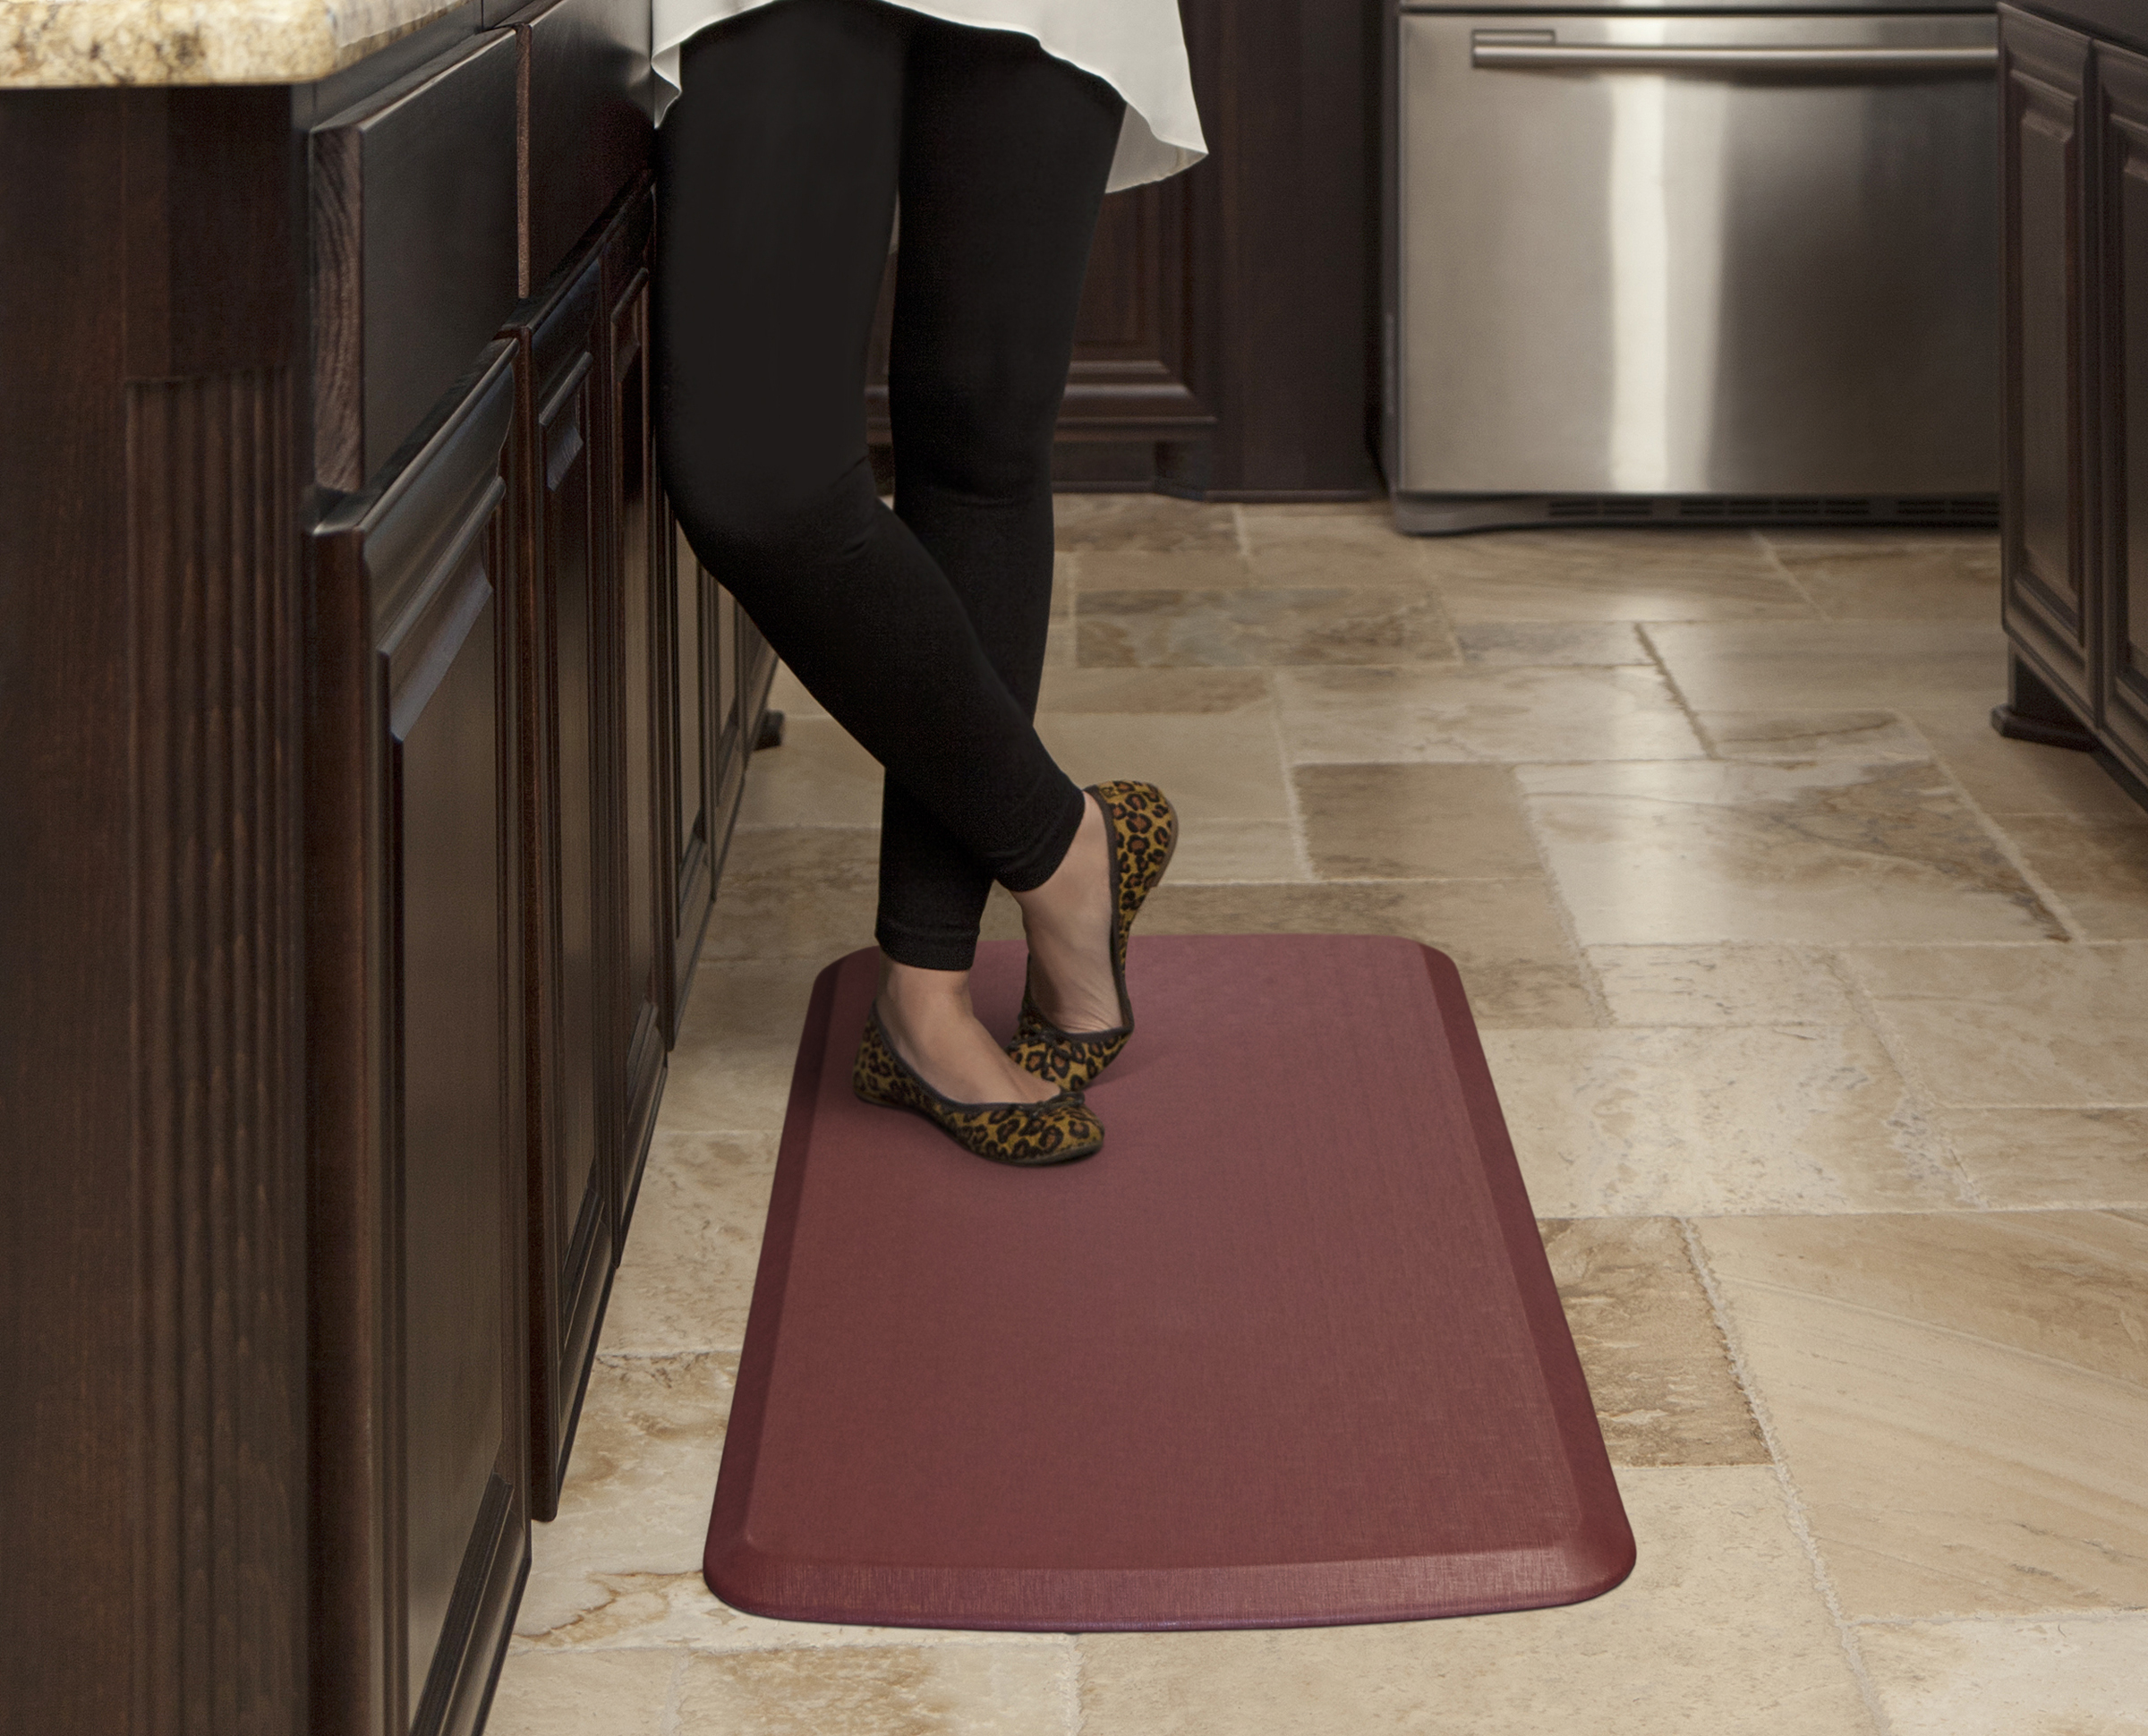 Gelpro Launches Gelpro Elite Floor Mat To Deliver Unparalleled Comfort To Kitchen Cooks Business Wire